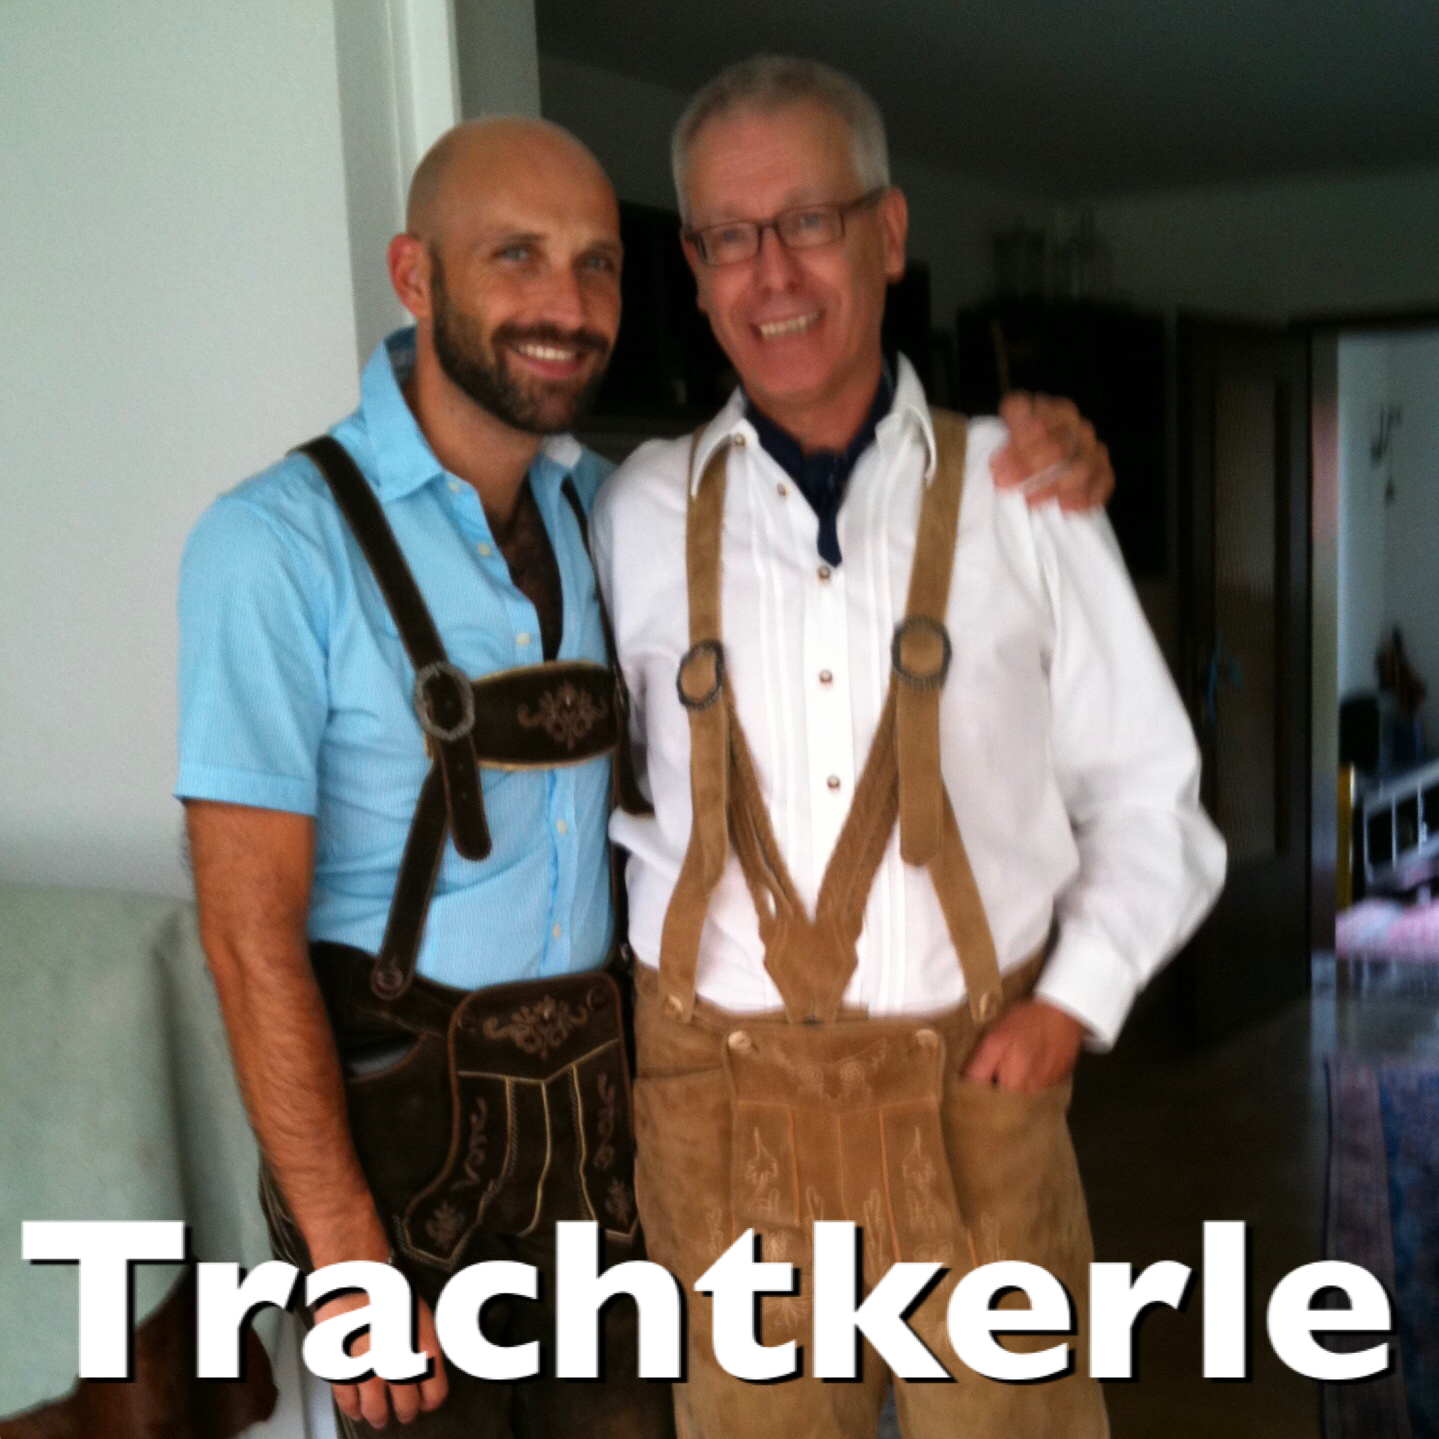 Trachtkerle